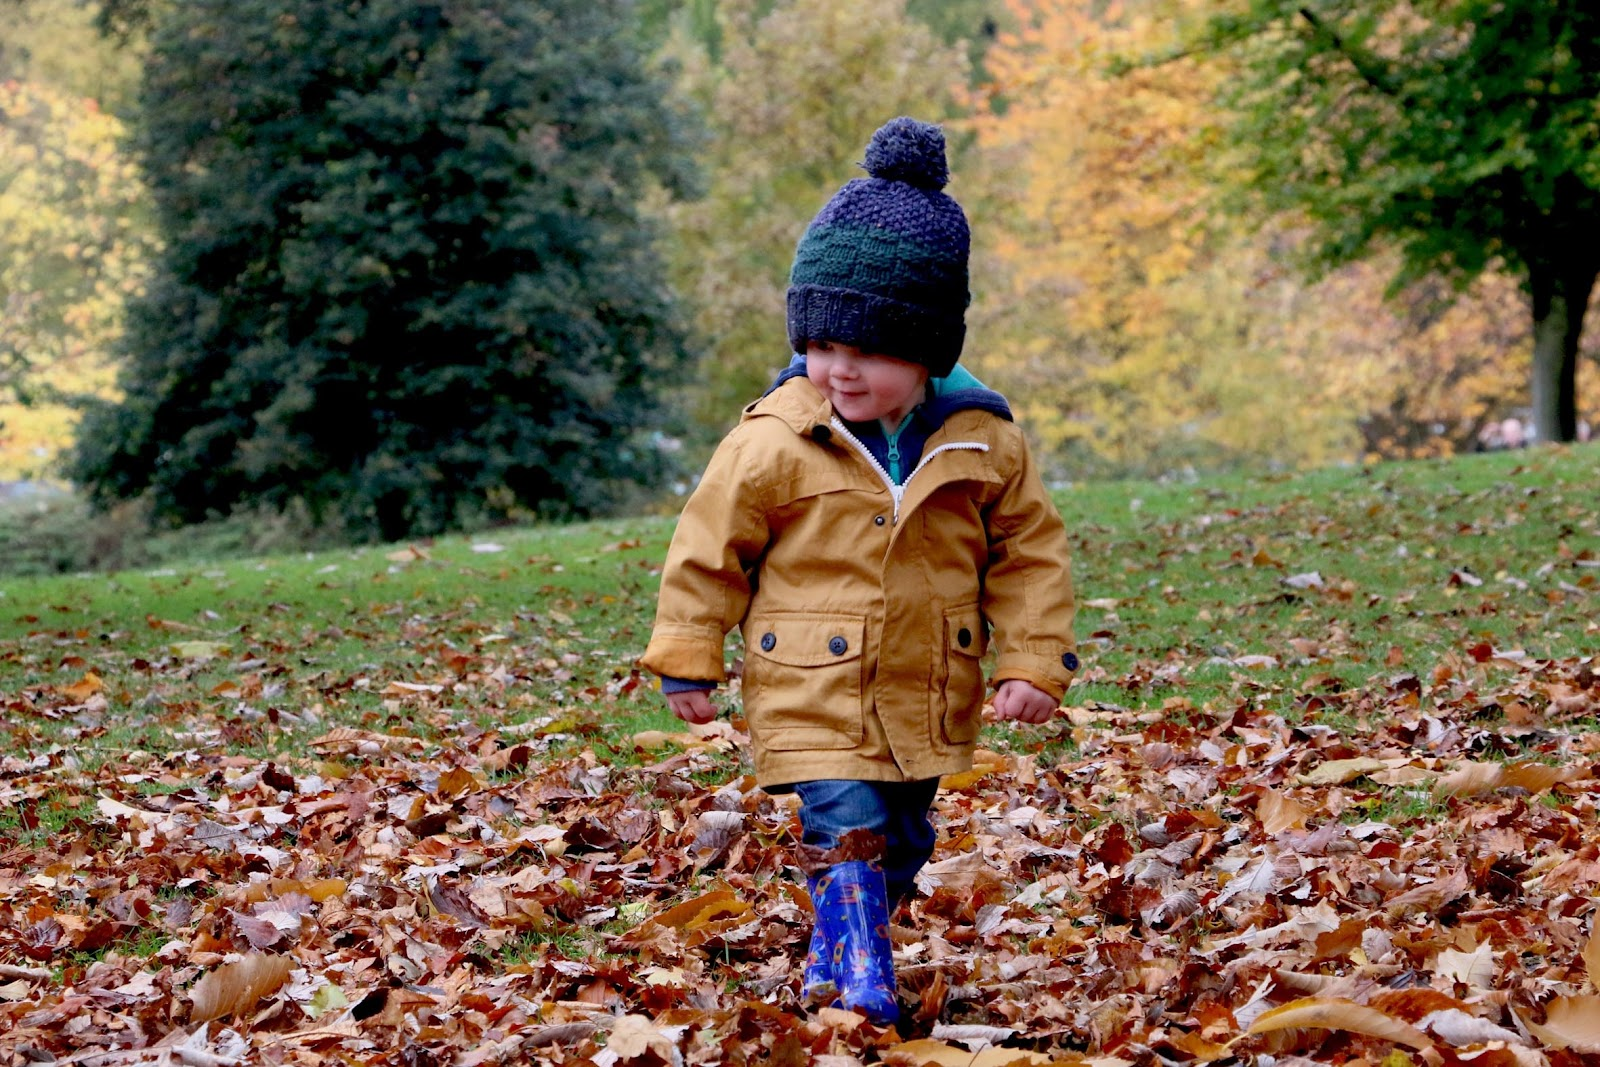 Private child ADHD assessment UK